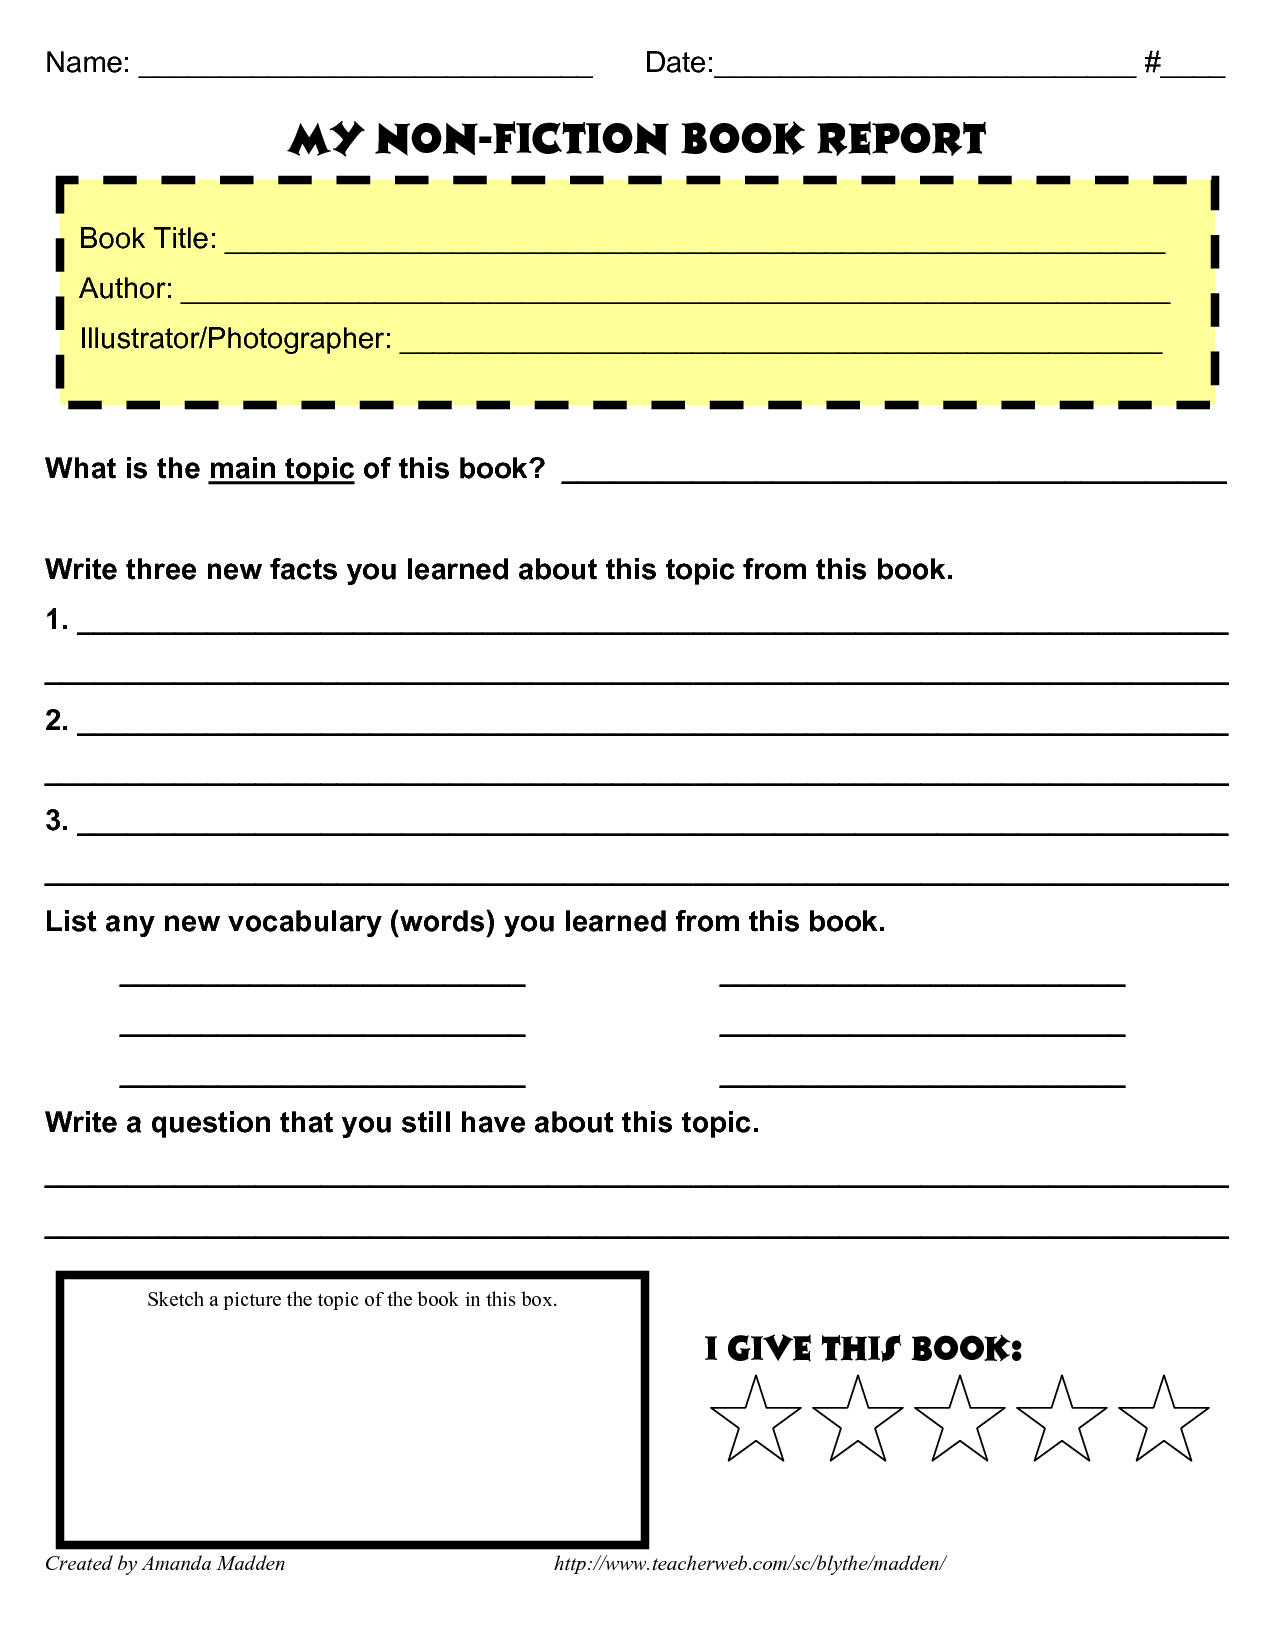 Non Fiction Book Report Template High School – Book Report Template for High School